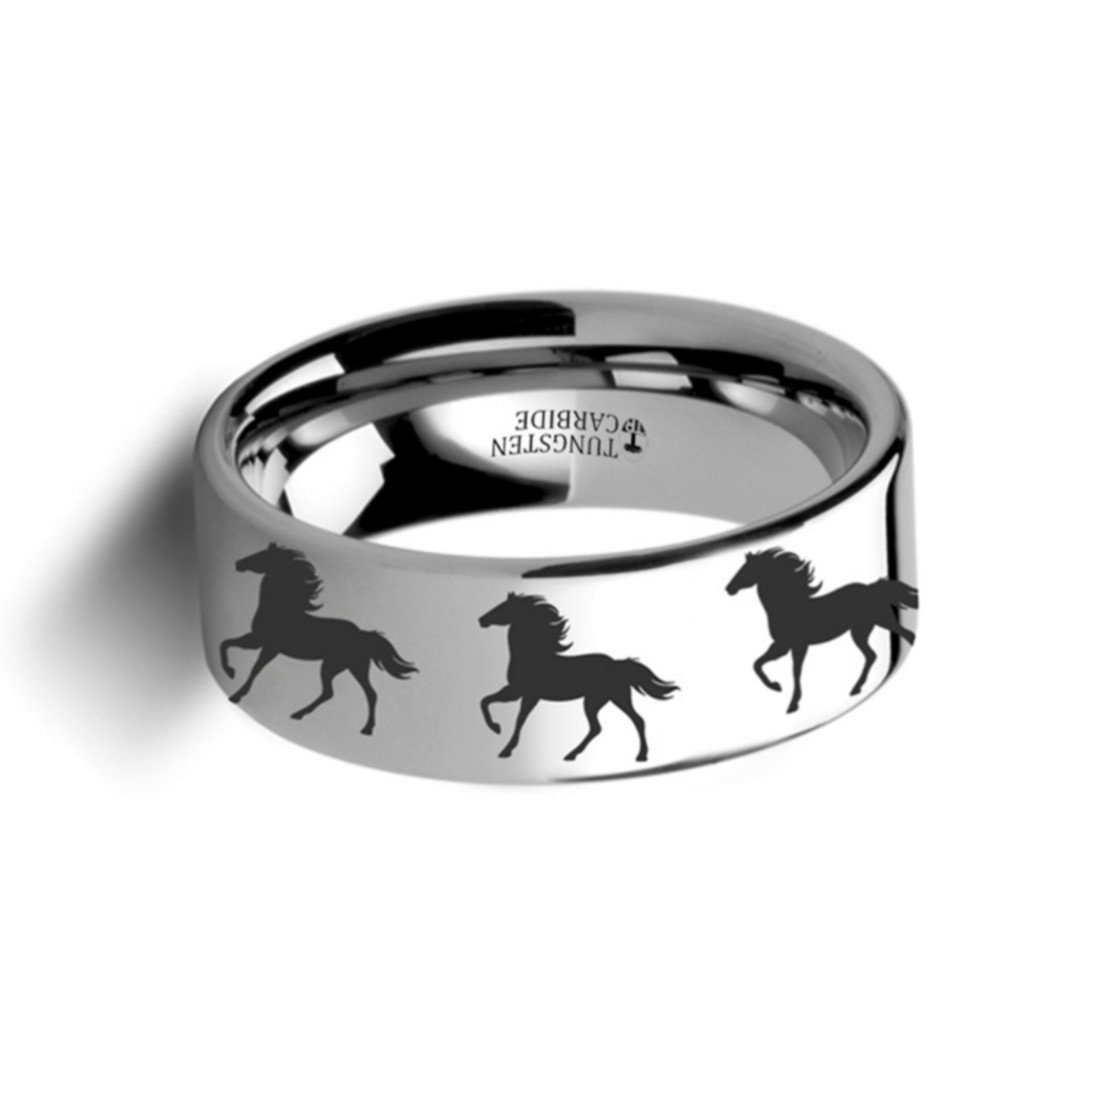 Thorsten Animal Trotting Running Horse Equestrian Print Pattern Ring Polished Tungsten Ring 4mm Wide Wedding Band from Roy Rose Jewelry